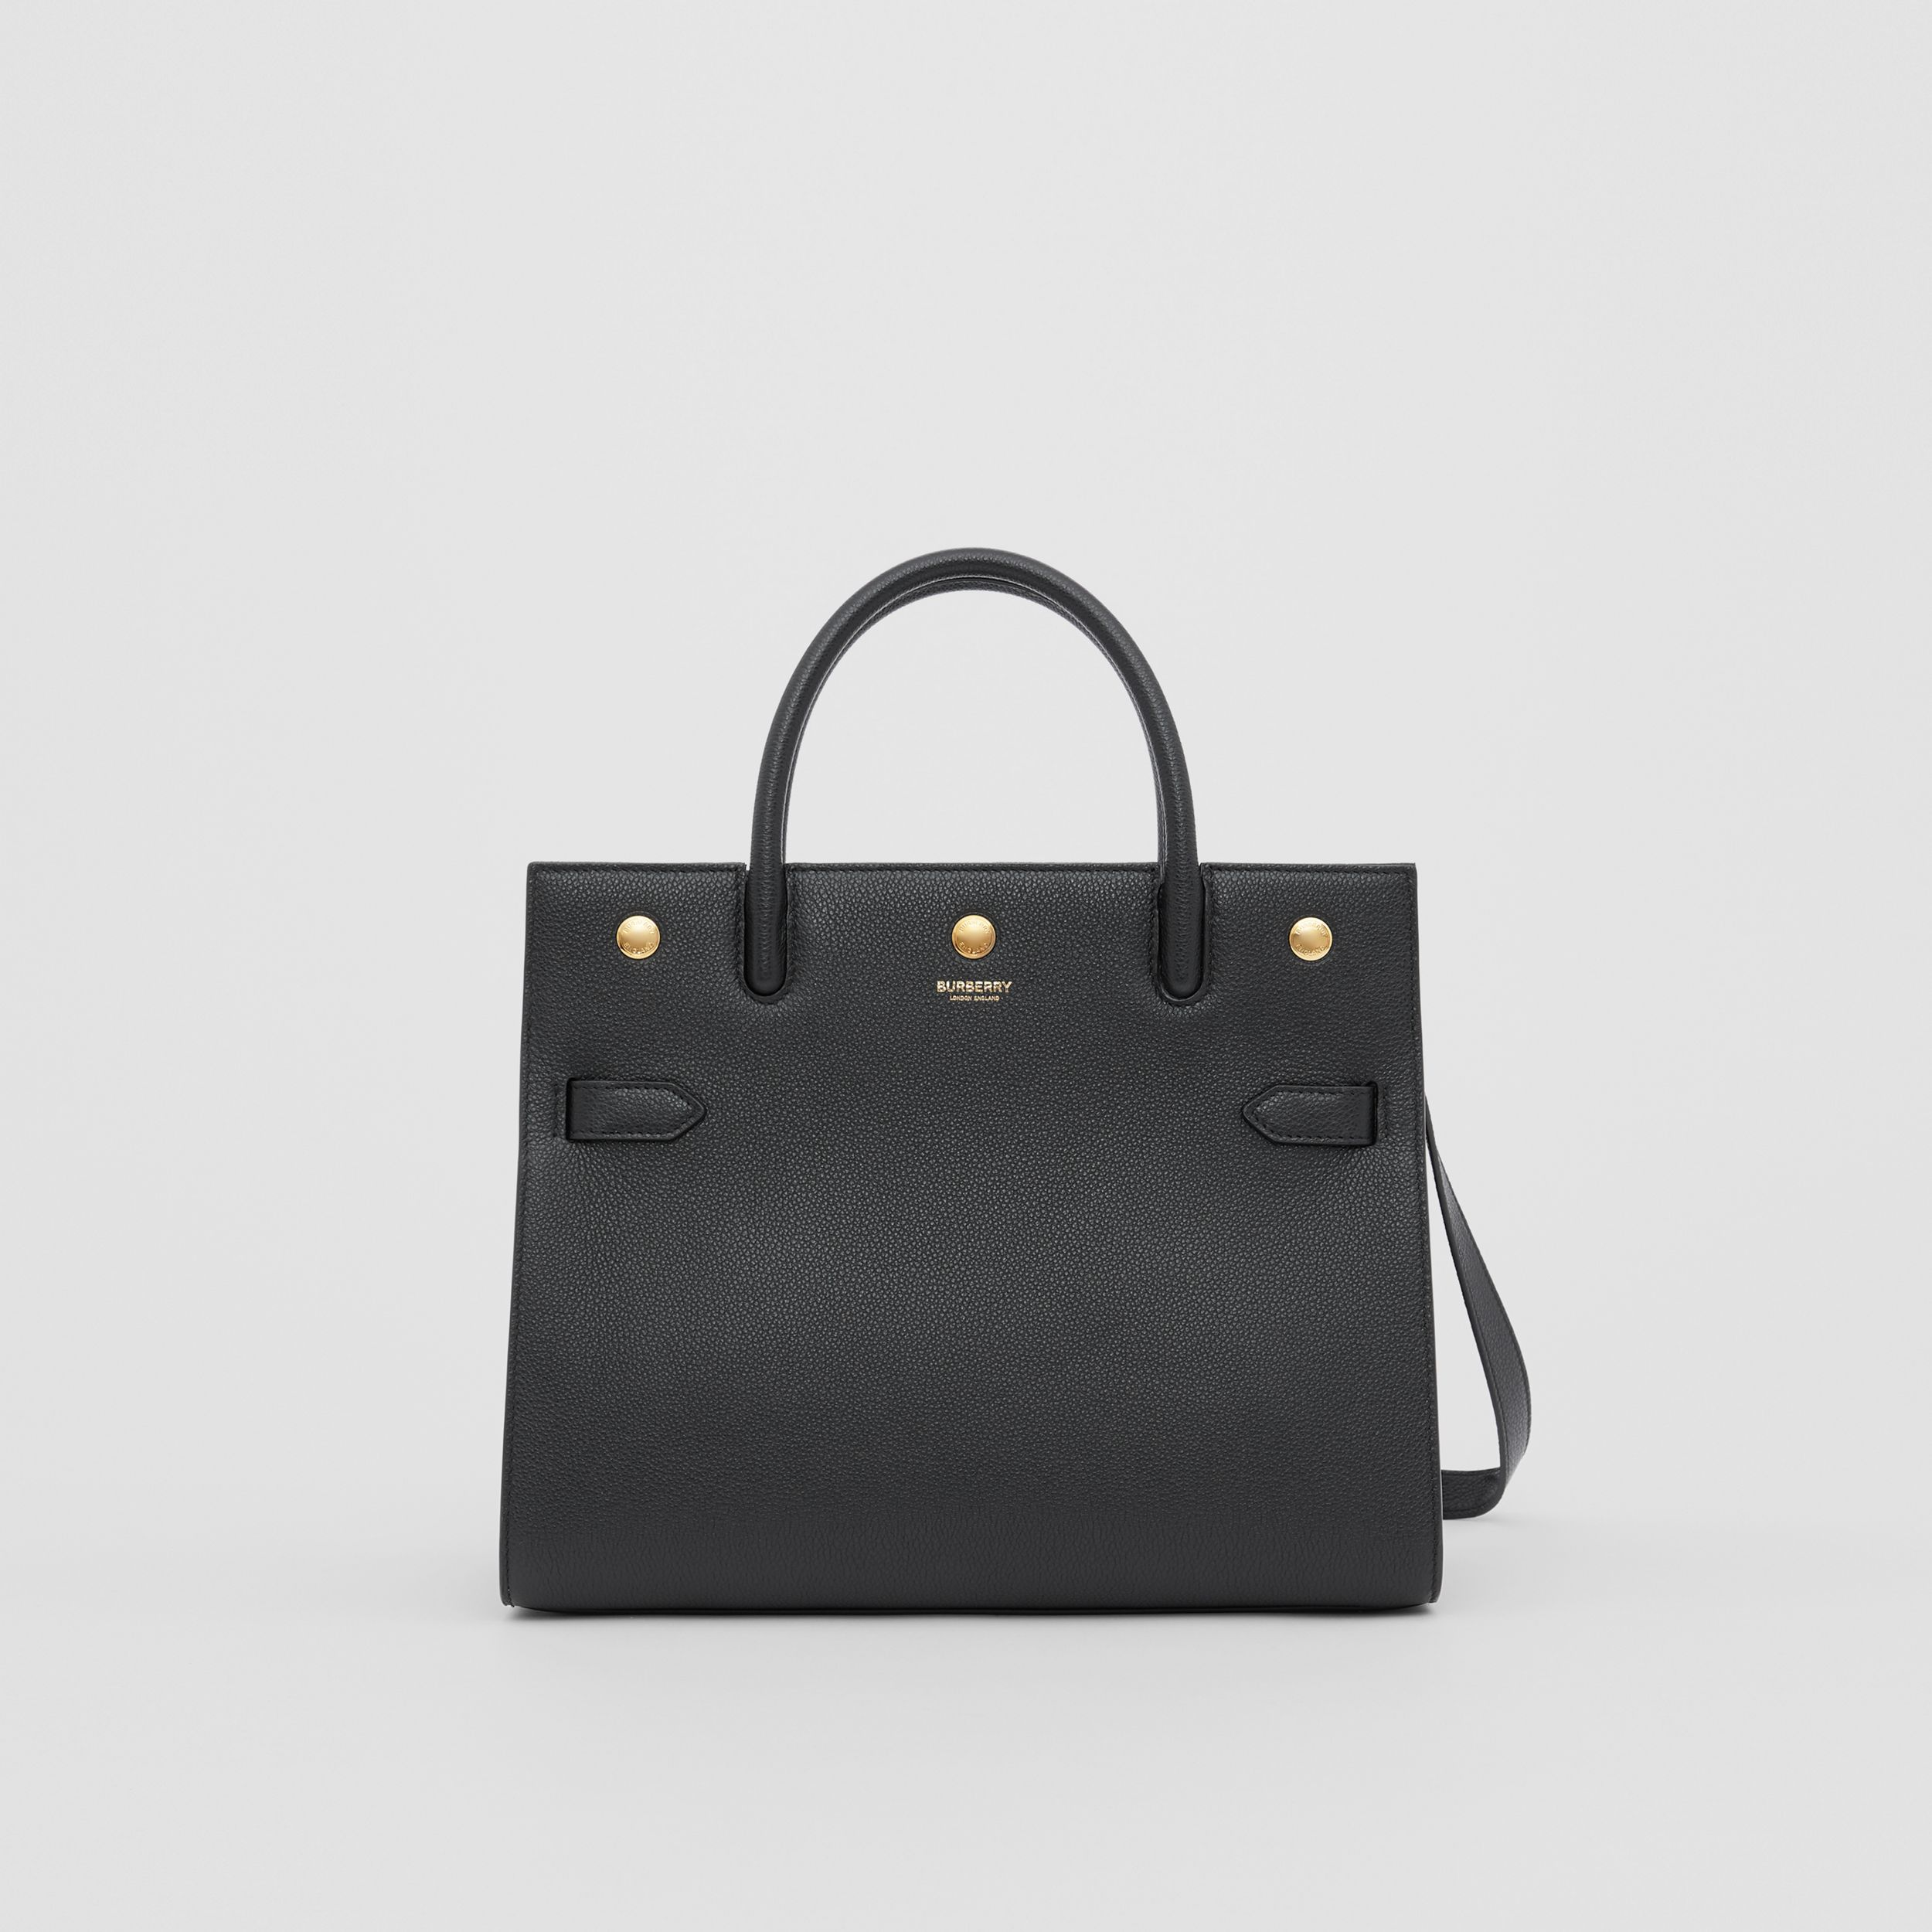 Small Leather Two-handle Title Bag in Black - Women | Burberry - 1